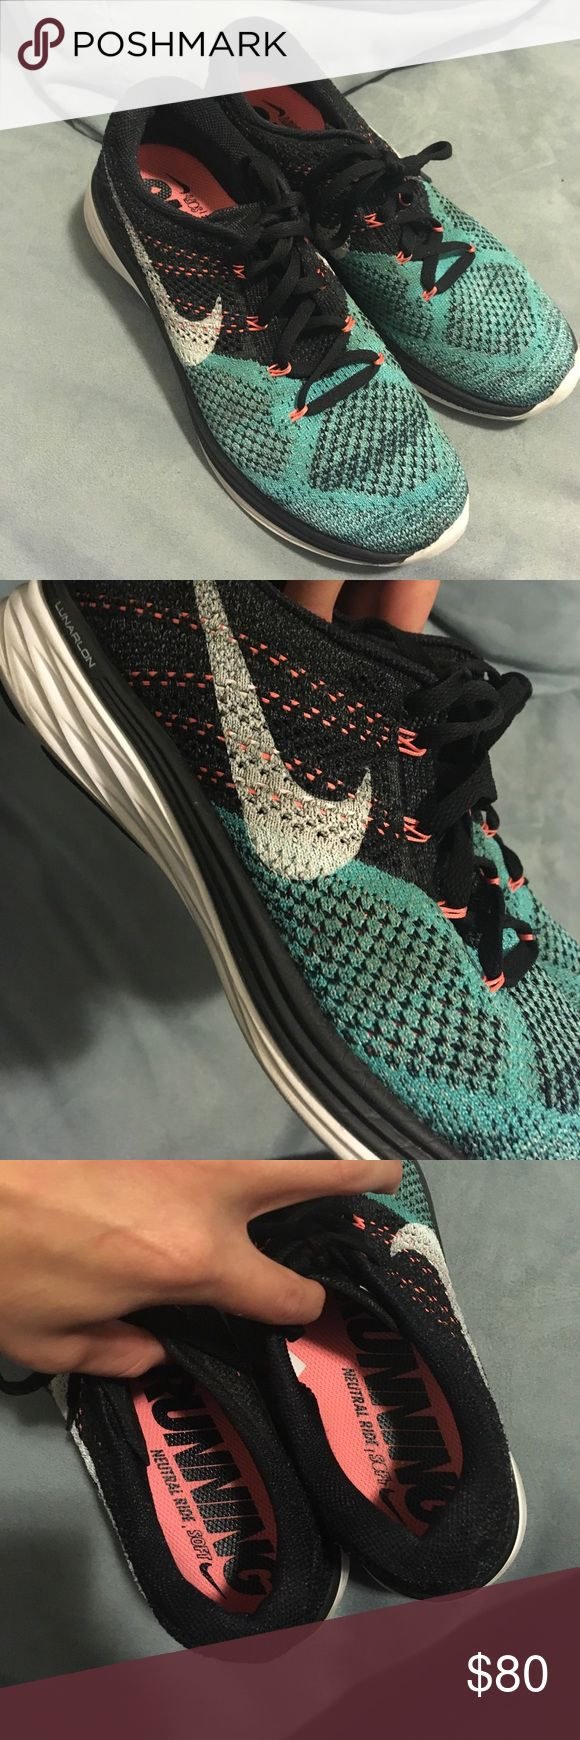 Nike Flyknit Lunar 3 Nike flyknit lunar 3 - woman's - worn once NEW condition. Womens size 8.5. Nike Shoes Sneakers